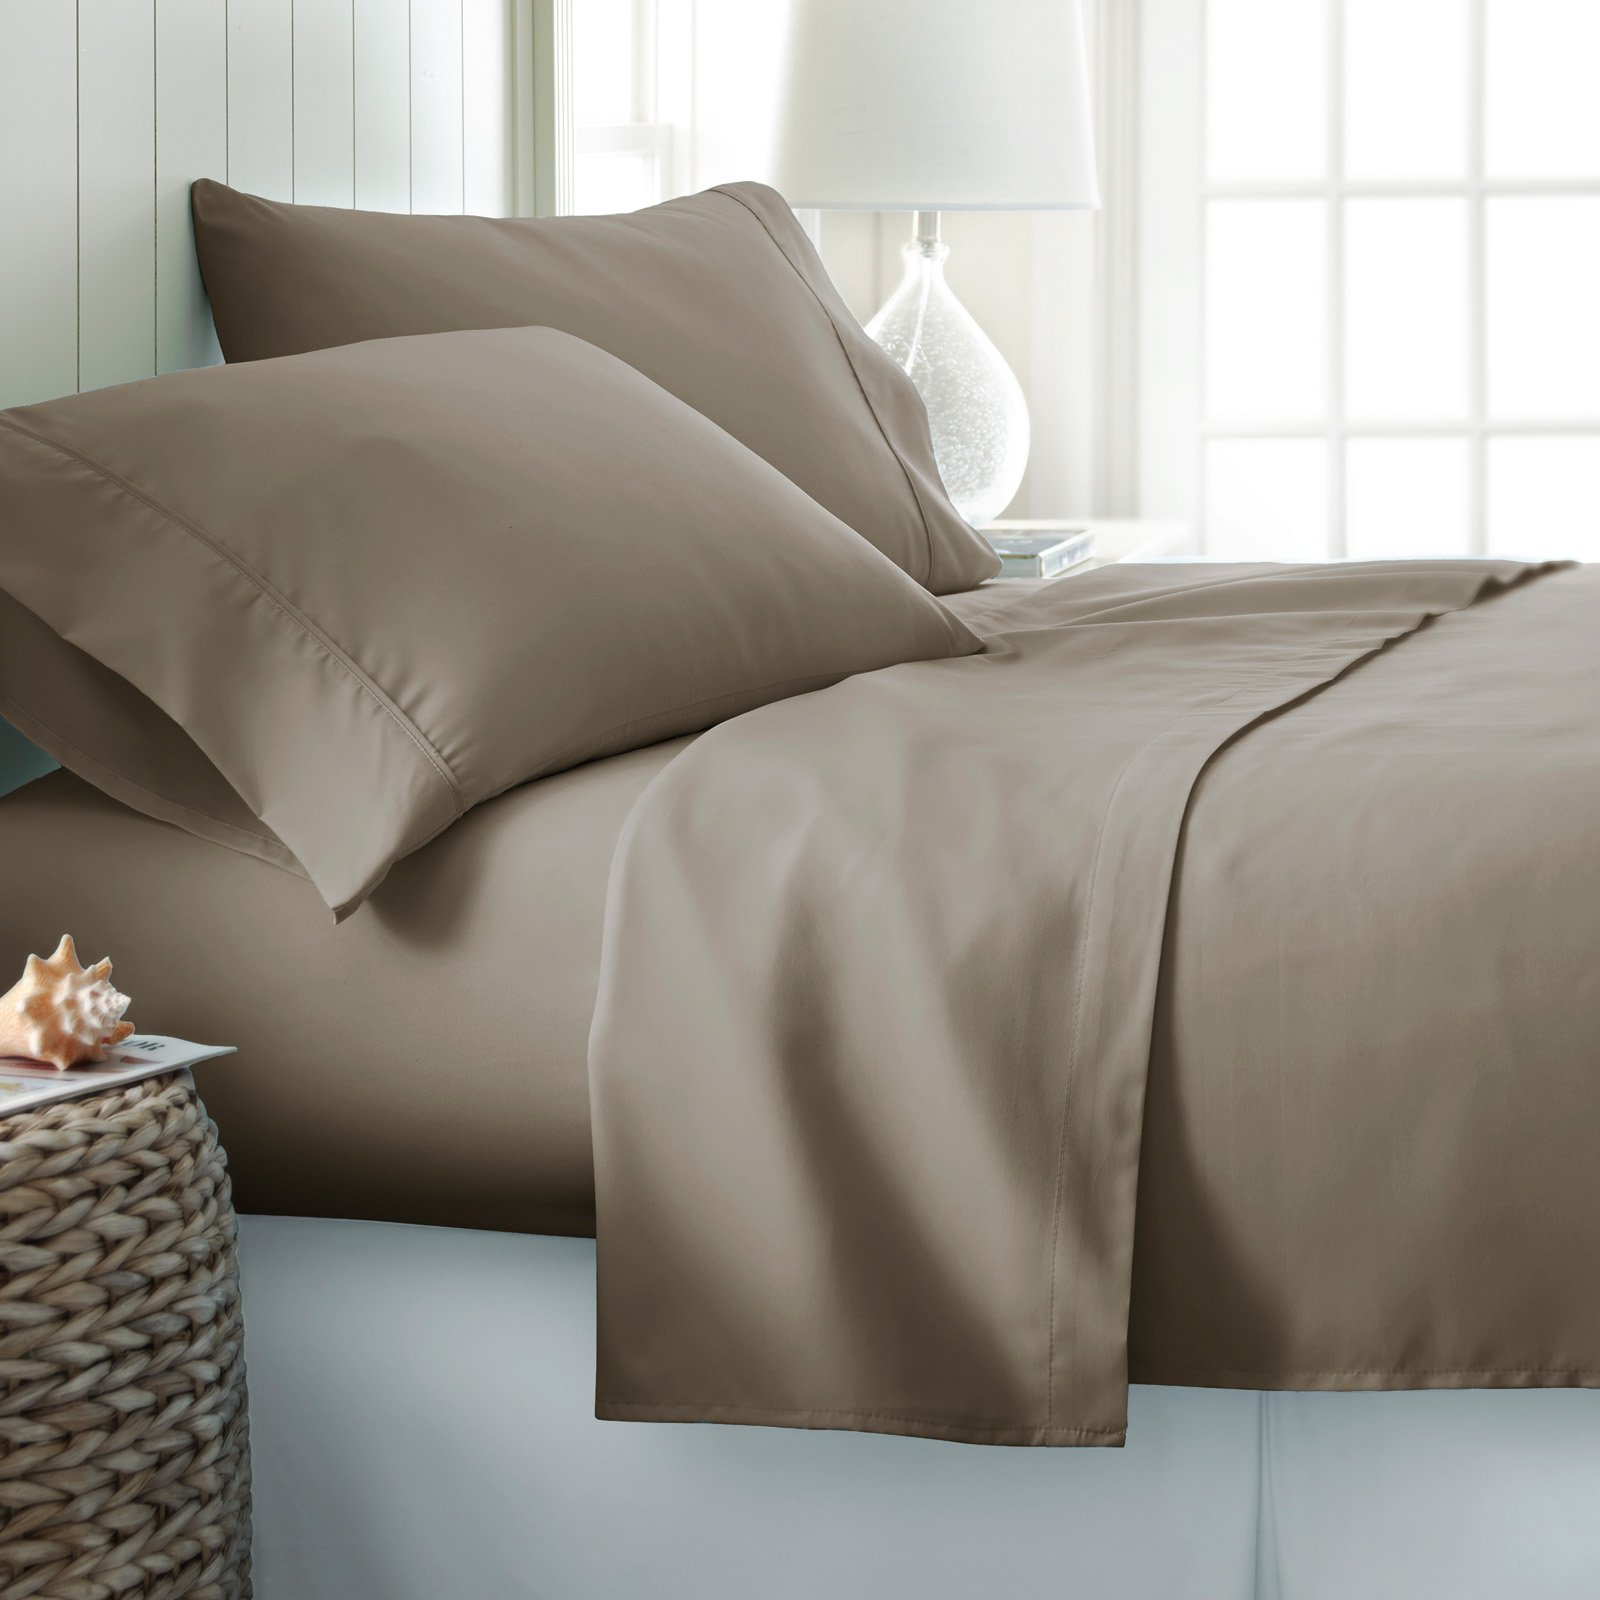 Simply Soft Bed Sheet Set By Ienjoy Home   Walmart.com